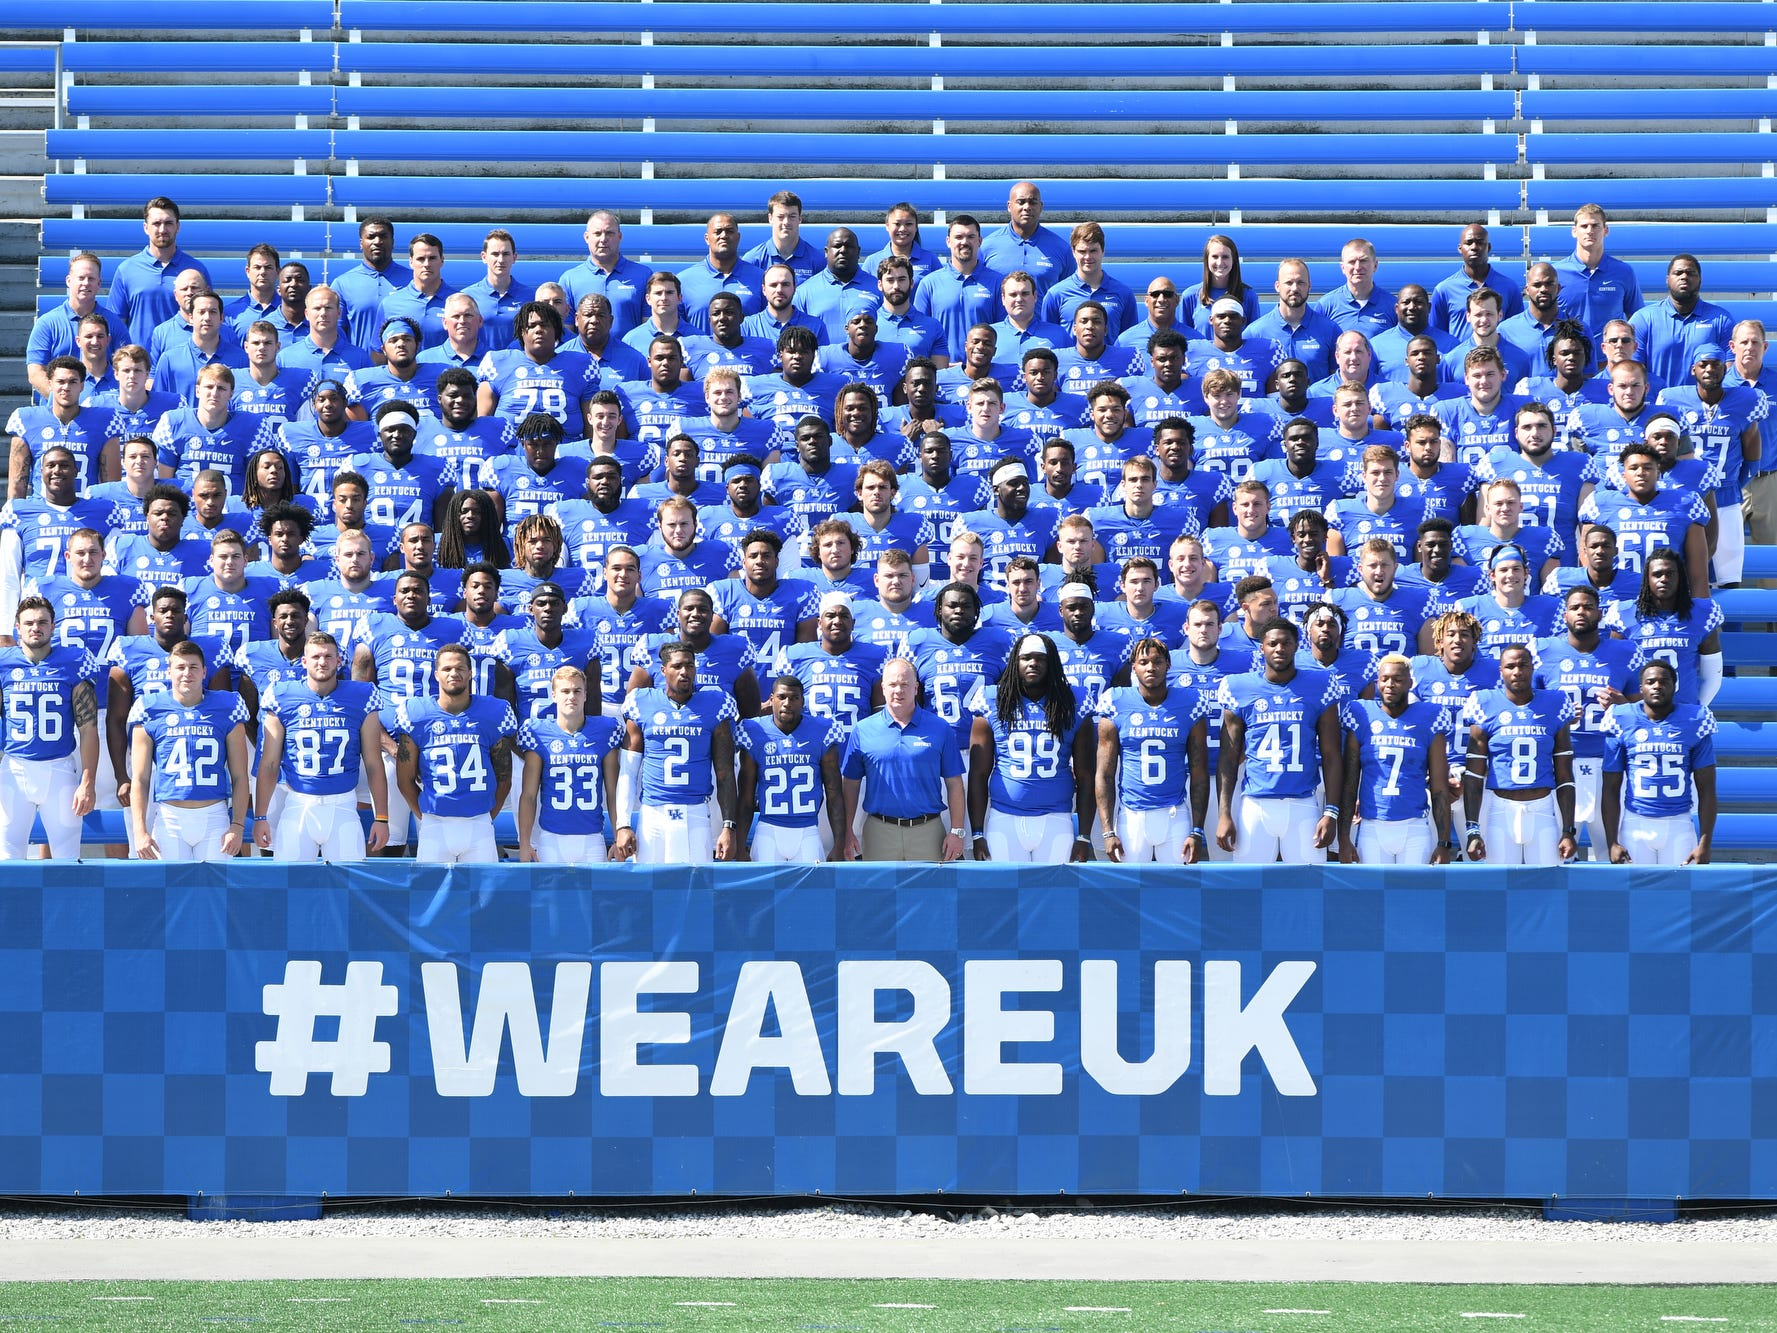 Team photograph during the UK football media day at Kroger Filed in Lexington, Kentucky on Friday, August 3, 2018.